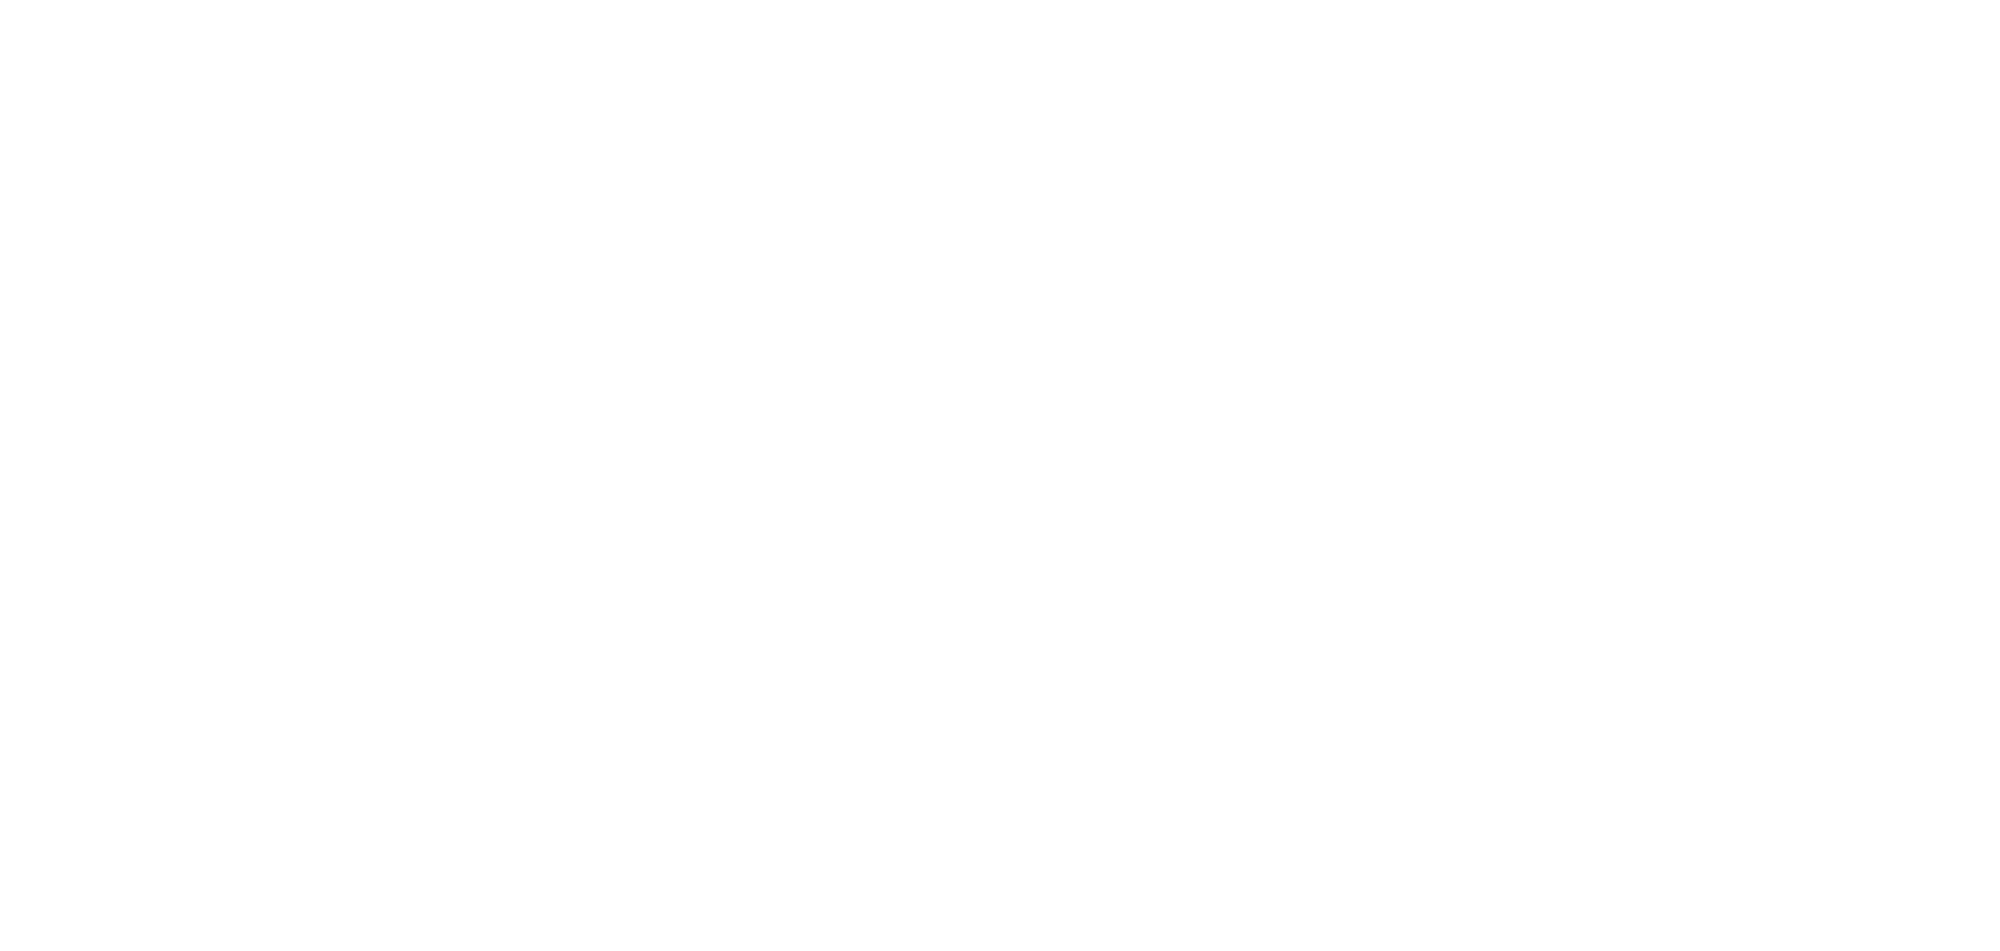 Silverstone Technology Cluster Members